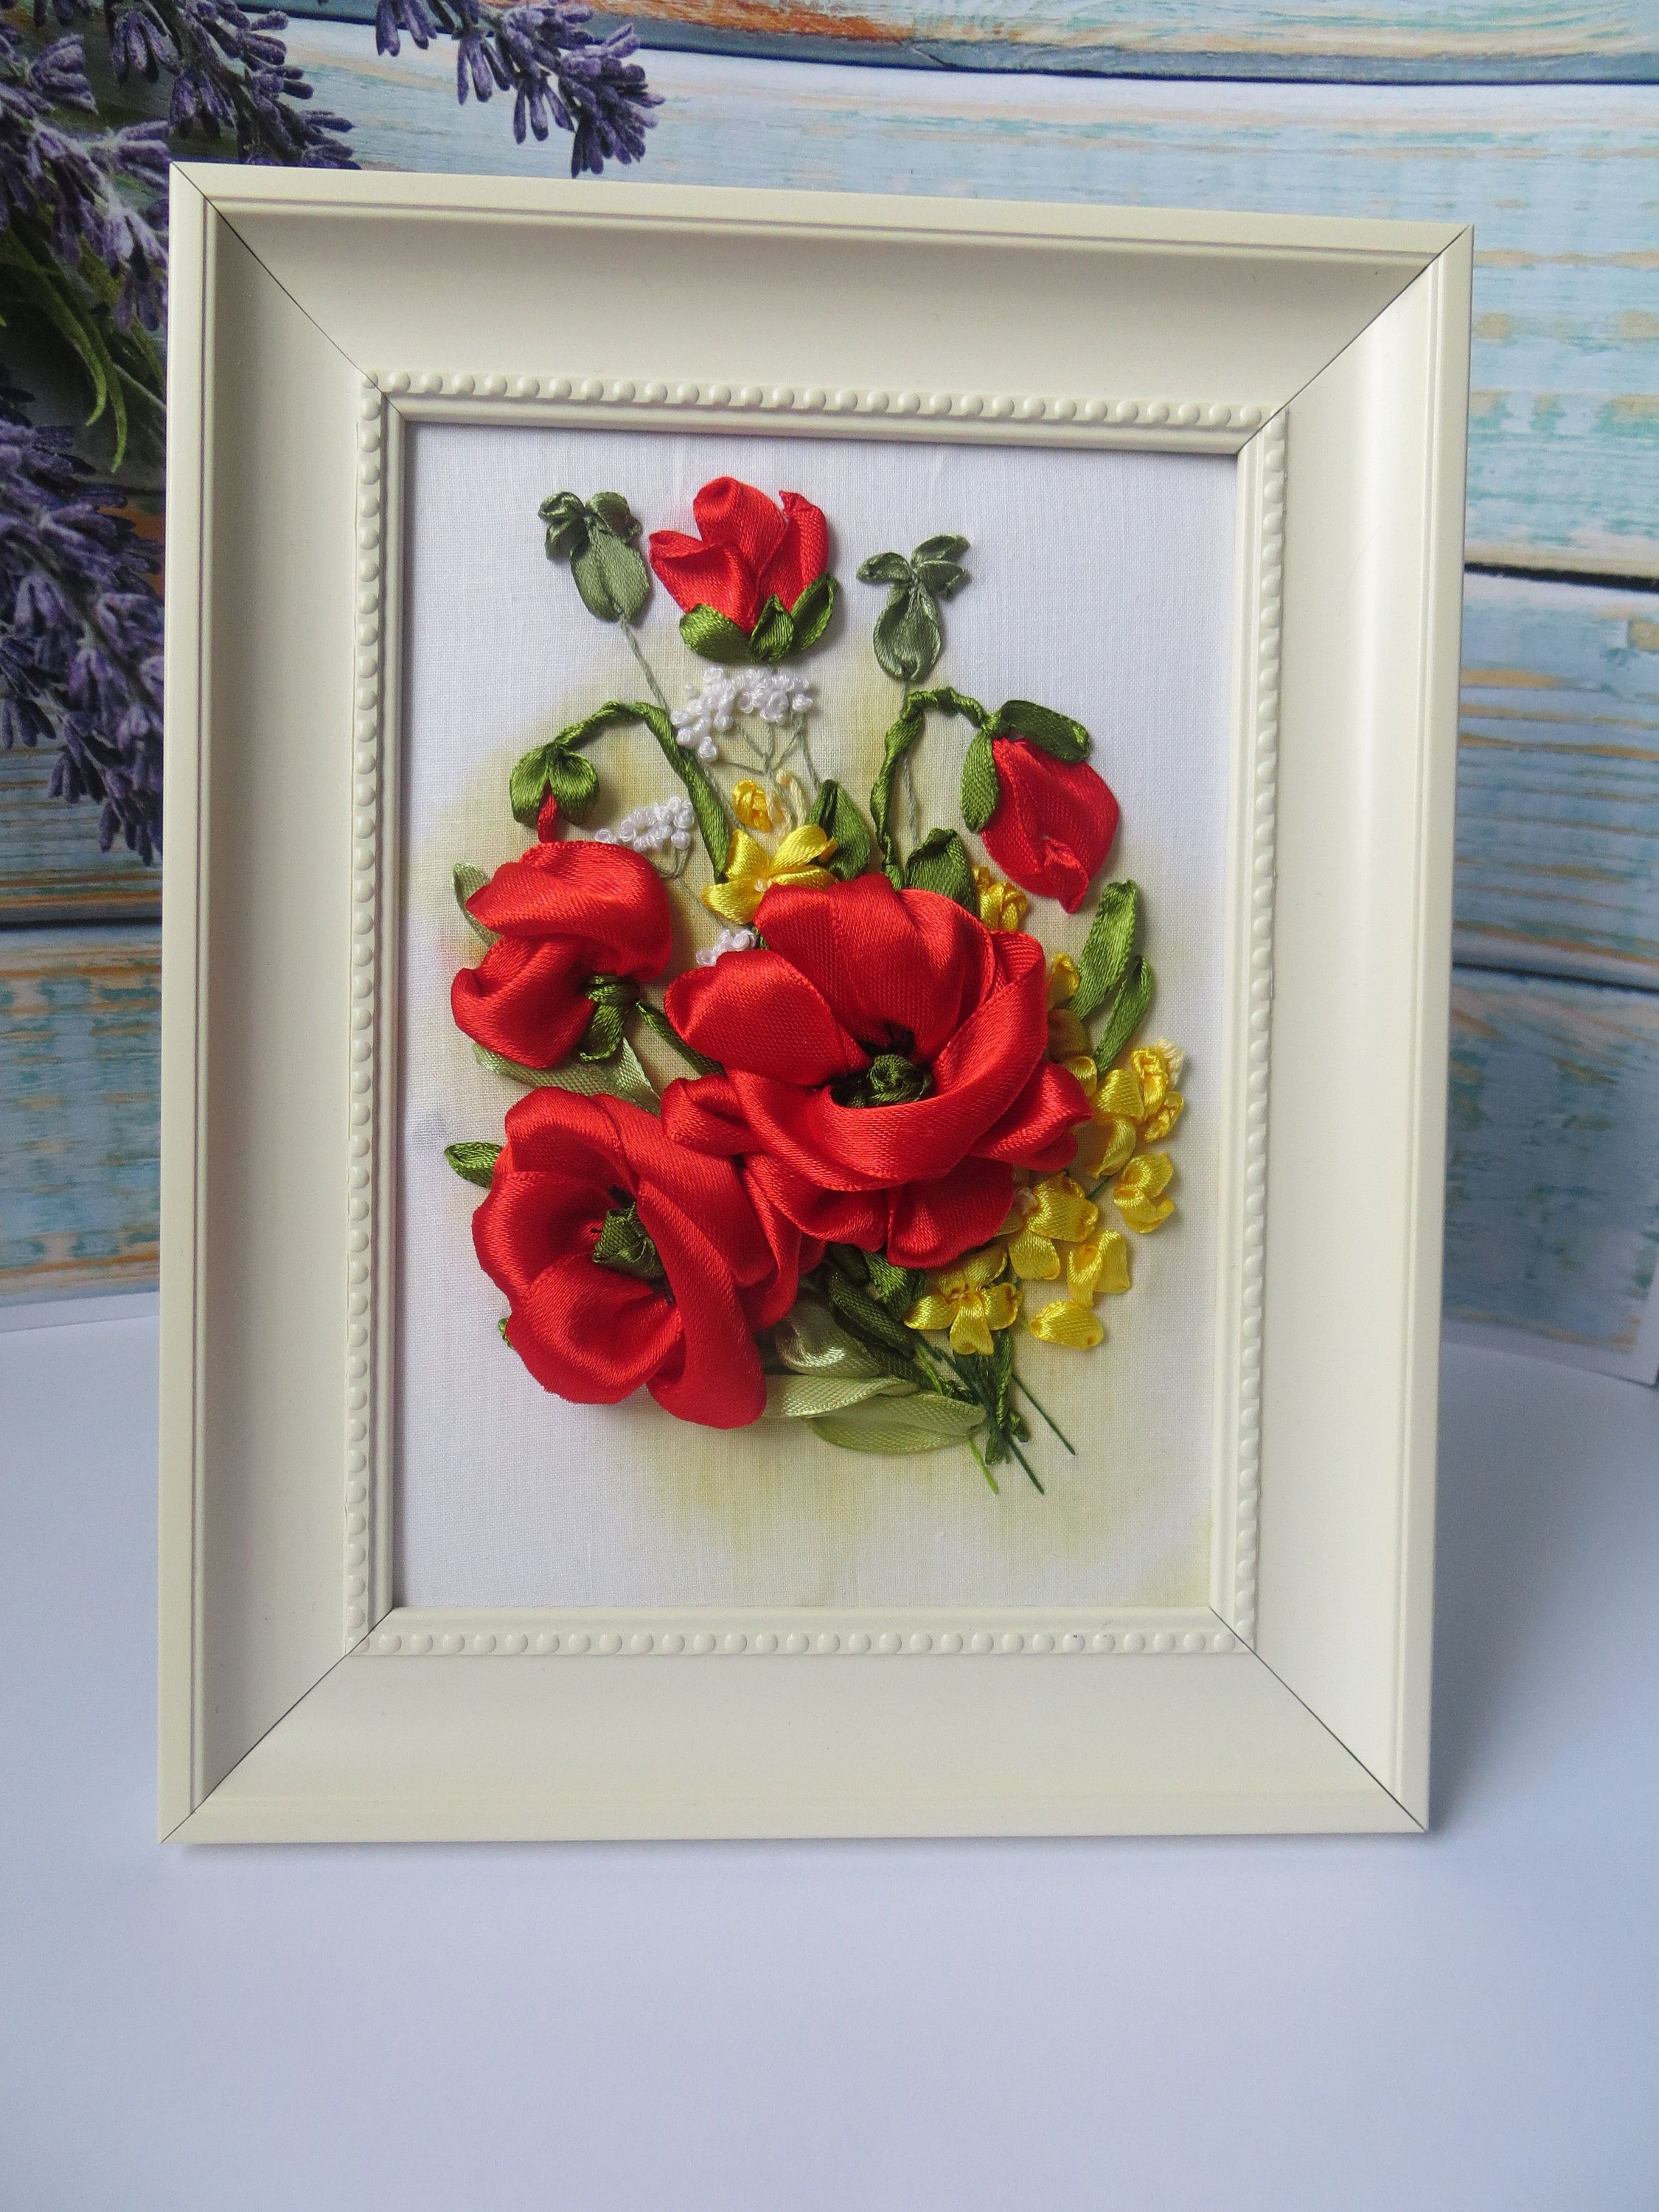 Ribbon Embroidery Art Framed Ribbon Embroidery Poppies Red Poppies Etsy Crafts Handmade Gifts Etsy Crafts Ribbon Embroidery